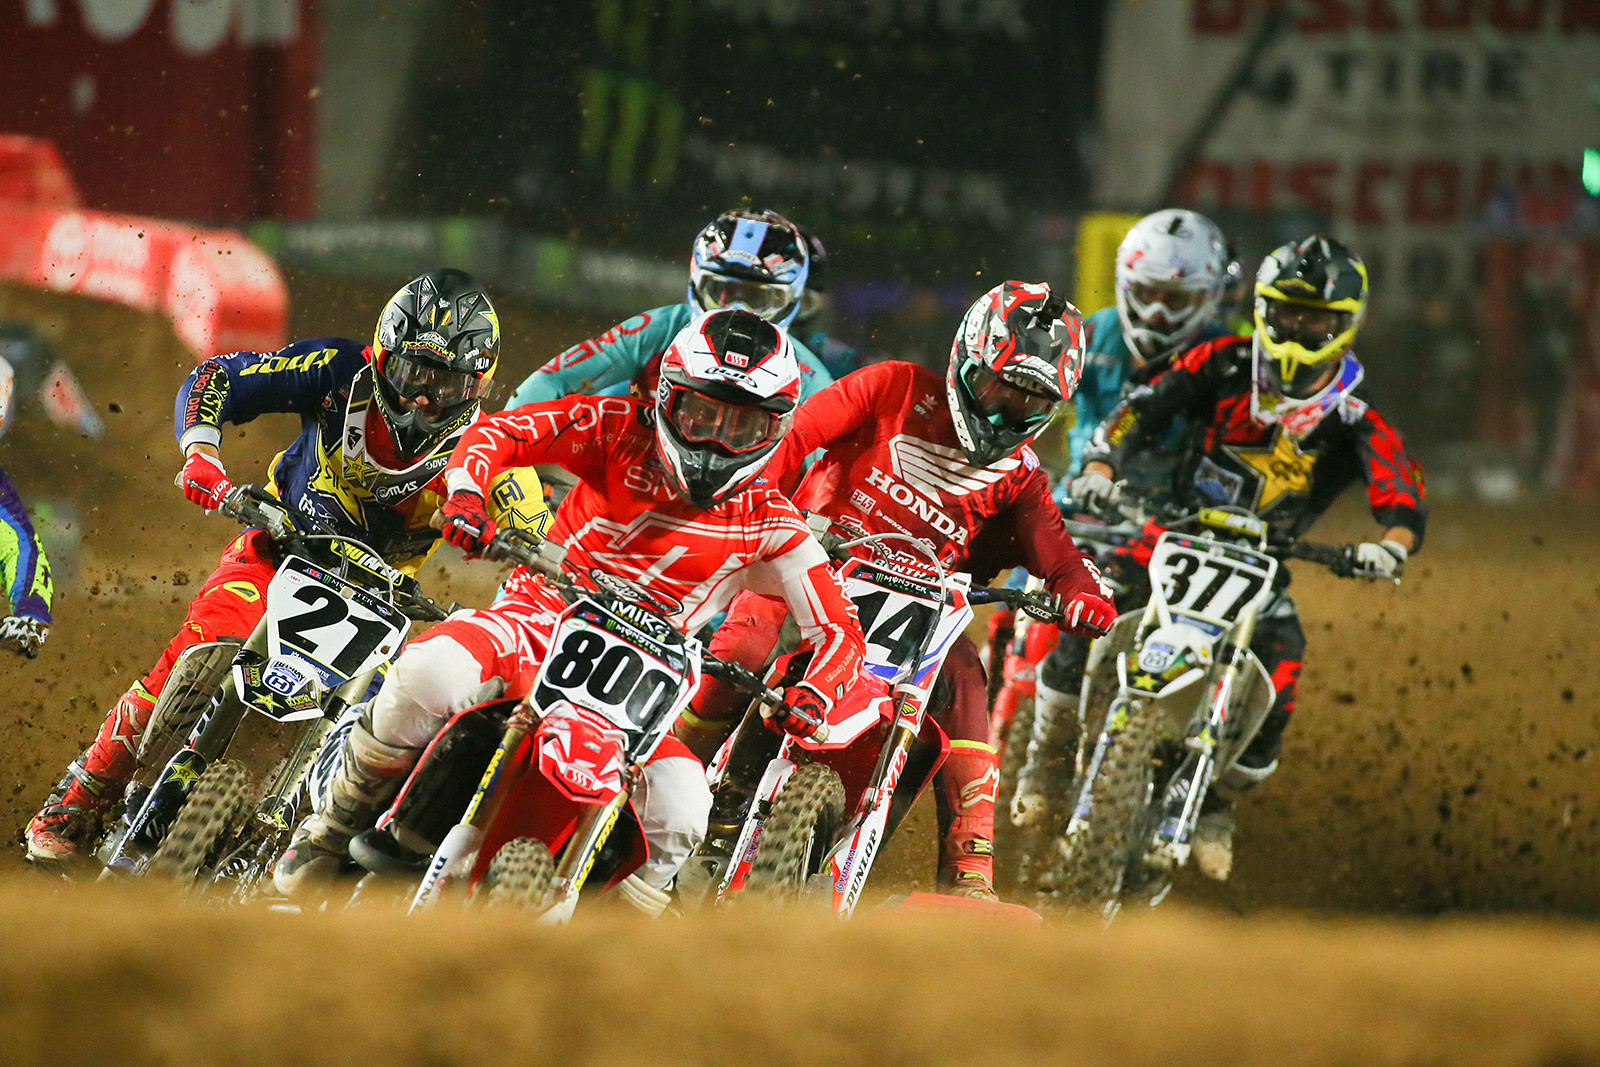 Mike Alessi, Jason Anderson, and Cole Seely - Photo Blast: Glendale - Motocross Pictures - Vital MX